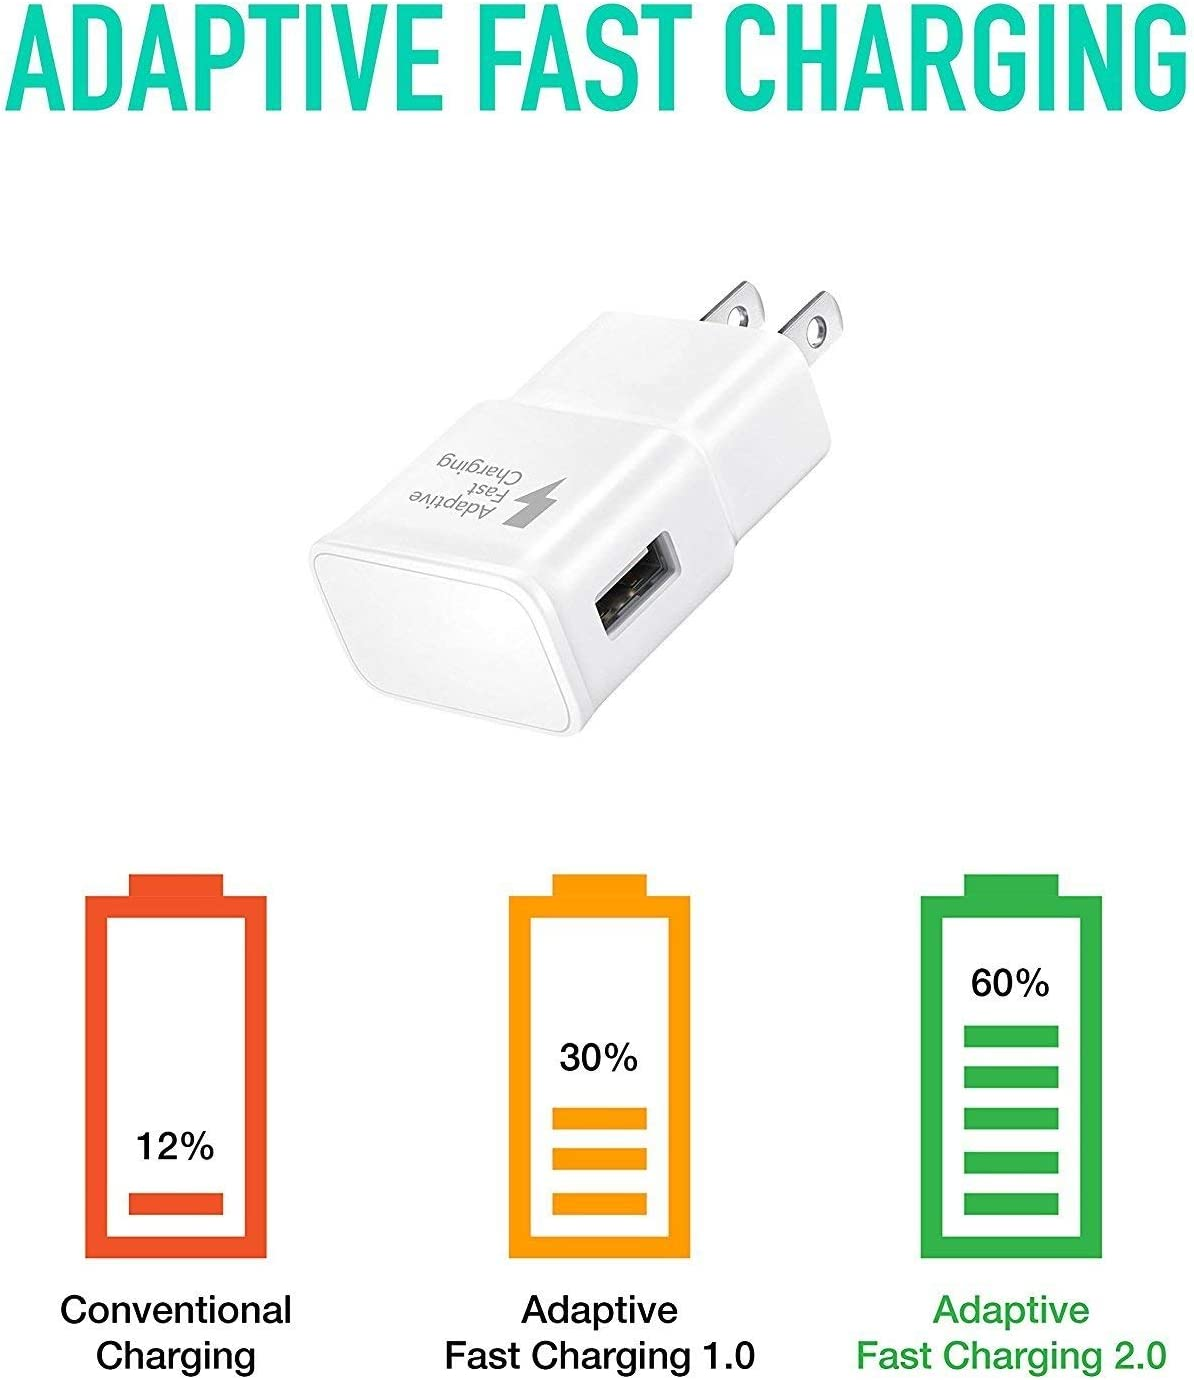 J7 Duo Android Micro USB Cable,USB Wall Charger for Data Sync and Charging Compatible with Samsung Galaxy J7 Prime 2 Duos Galaxy On Nxt J6+ Plus